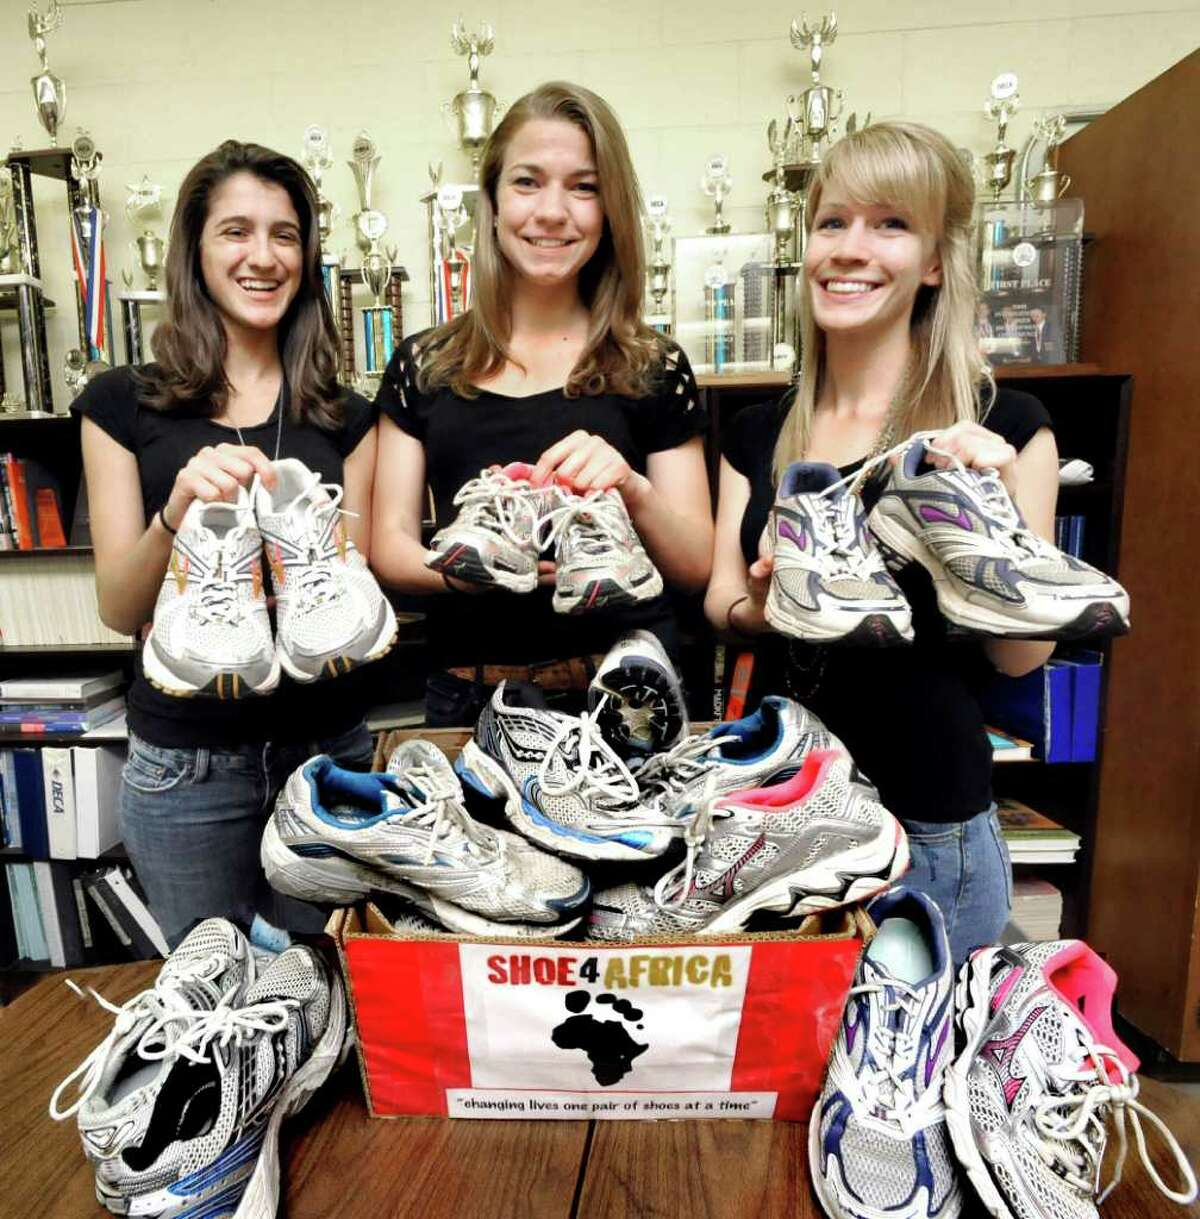 """From left, Brianna Maffucci, Allie Bukowski, and Sarah Eyman, all 18, display some of the shoes they have collected to benefit """"Shoe4Africa,"""" a program that collects running shoes and ships them to the poor in Africa. Photographed at Danbury High School on Monday, May 23, 2011."""